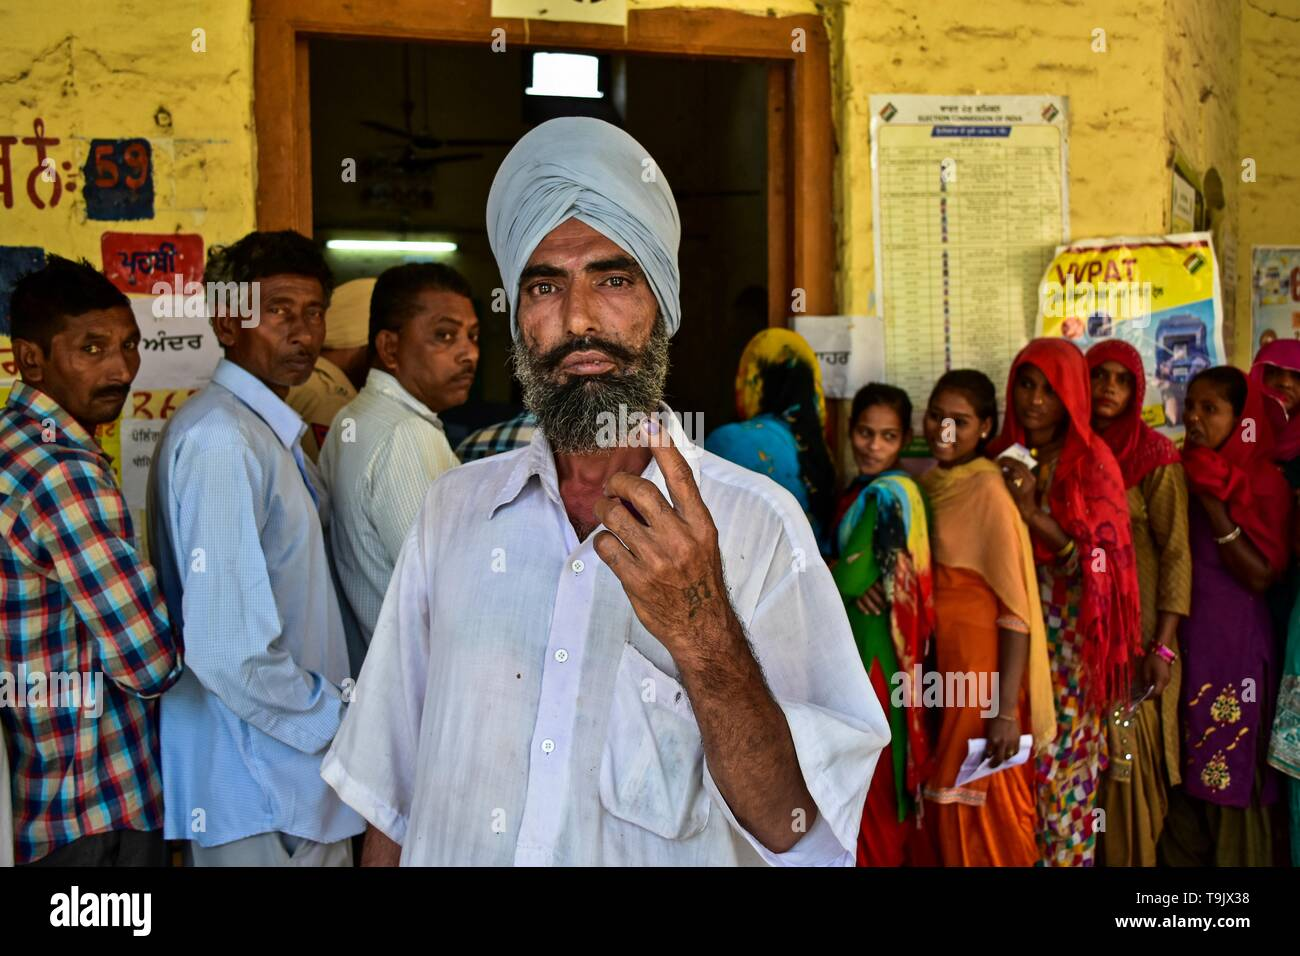 An Indian voter seen showing his inked finger after casting his vote at a polling station during the final phase of India's general election in Patiala district of Punjab. Voting has begun for the final phase of Lok Sabha elections in Punjab, Bihar, West Bengal, Madhya Pradesh, Uttar Pradesh, Himachal Pradesh, Jharkhand and Chandigarh. Over 10.01 lakh voters will decide the fate of 918 candidates. The counting of votes will take place on May 23, officials said. - Stock Image